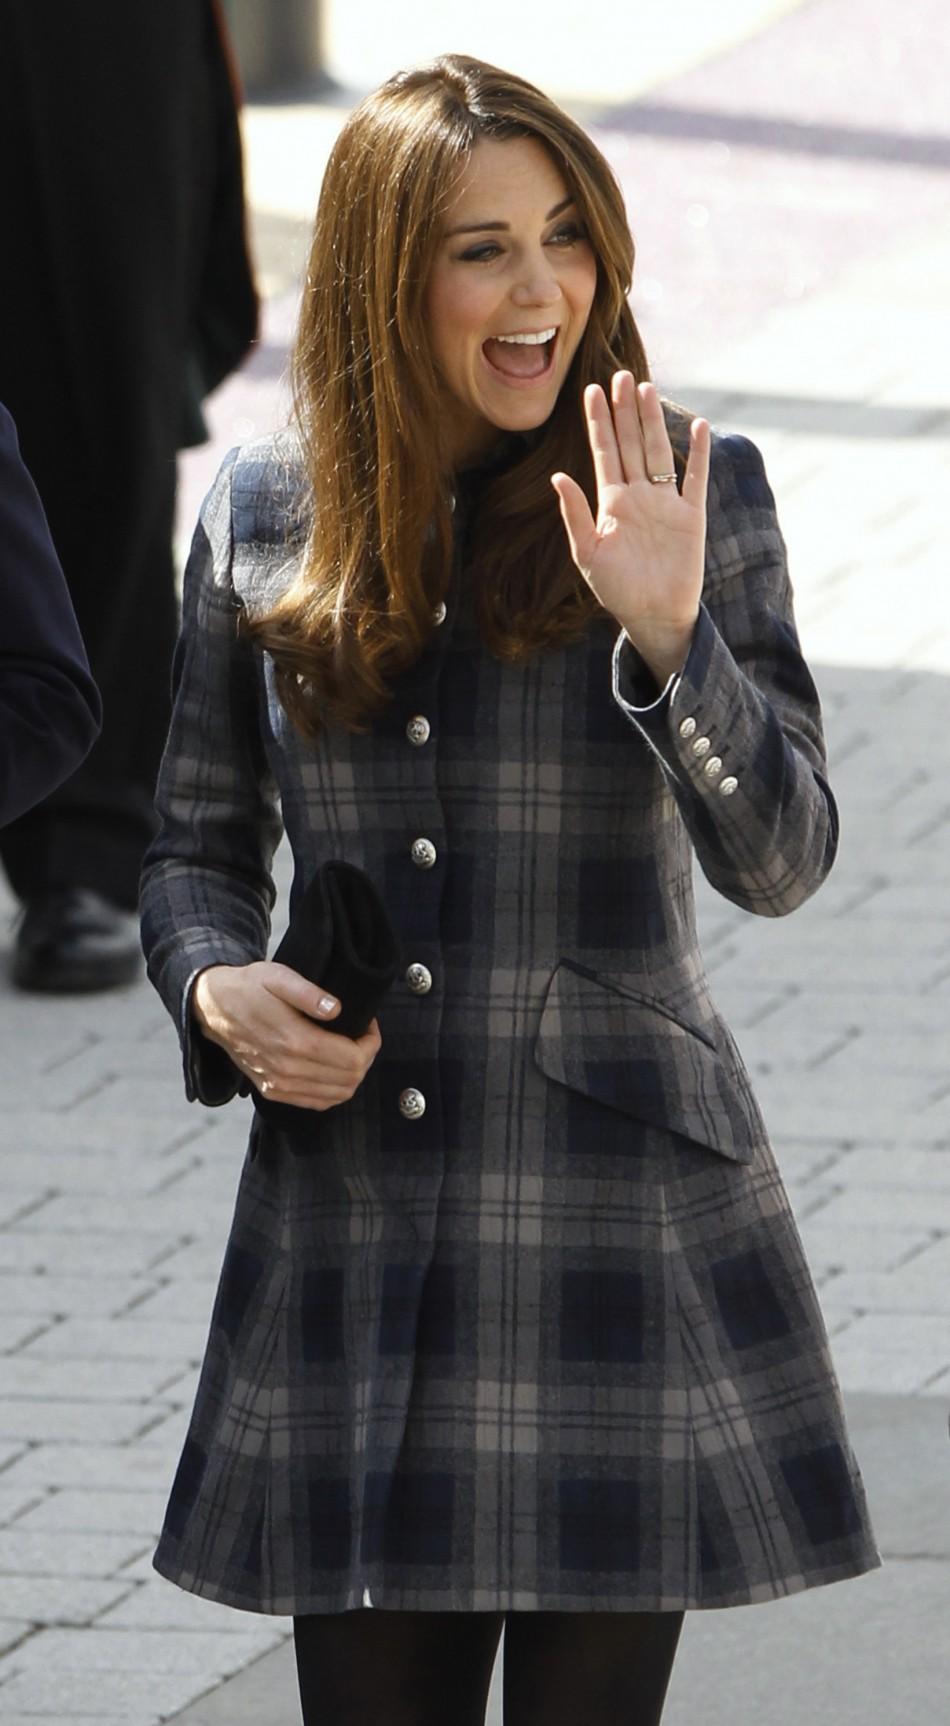 Britains Catherine, Duchess of Cambridge waves as she arrive for a visit to the Emirates Arena in Glasgow, Scotland April 4, 2013.